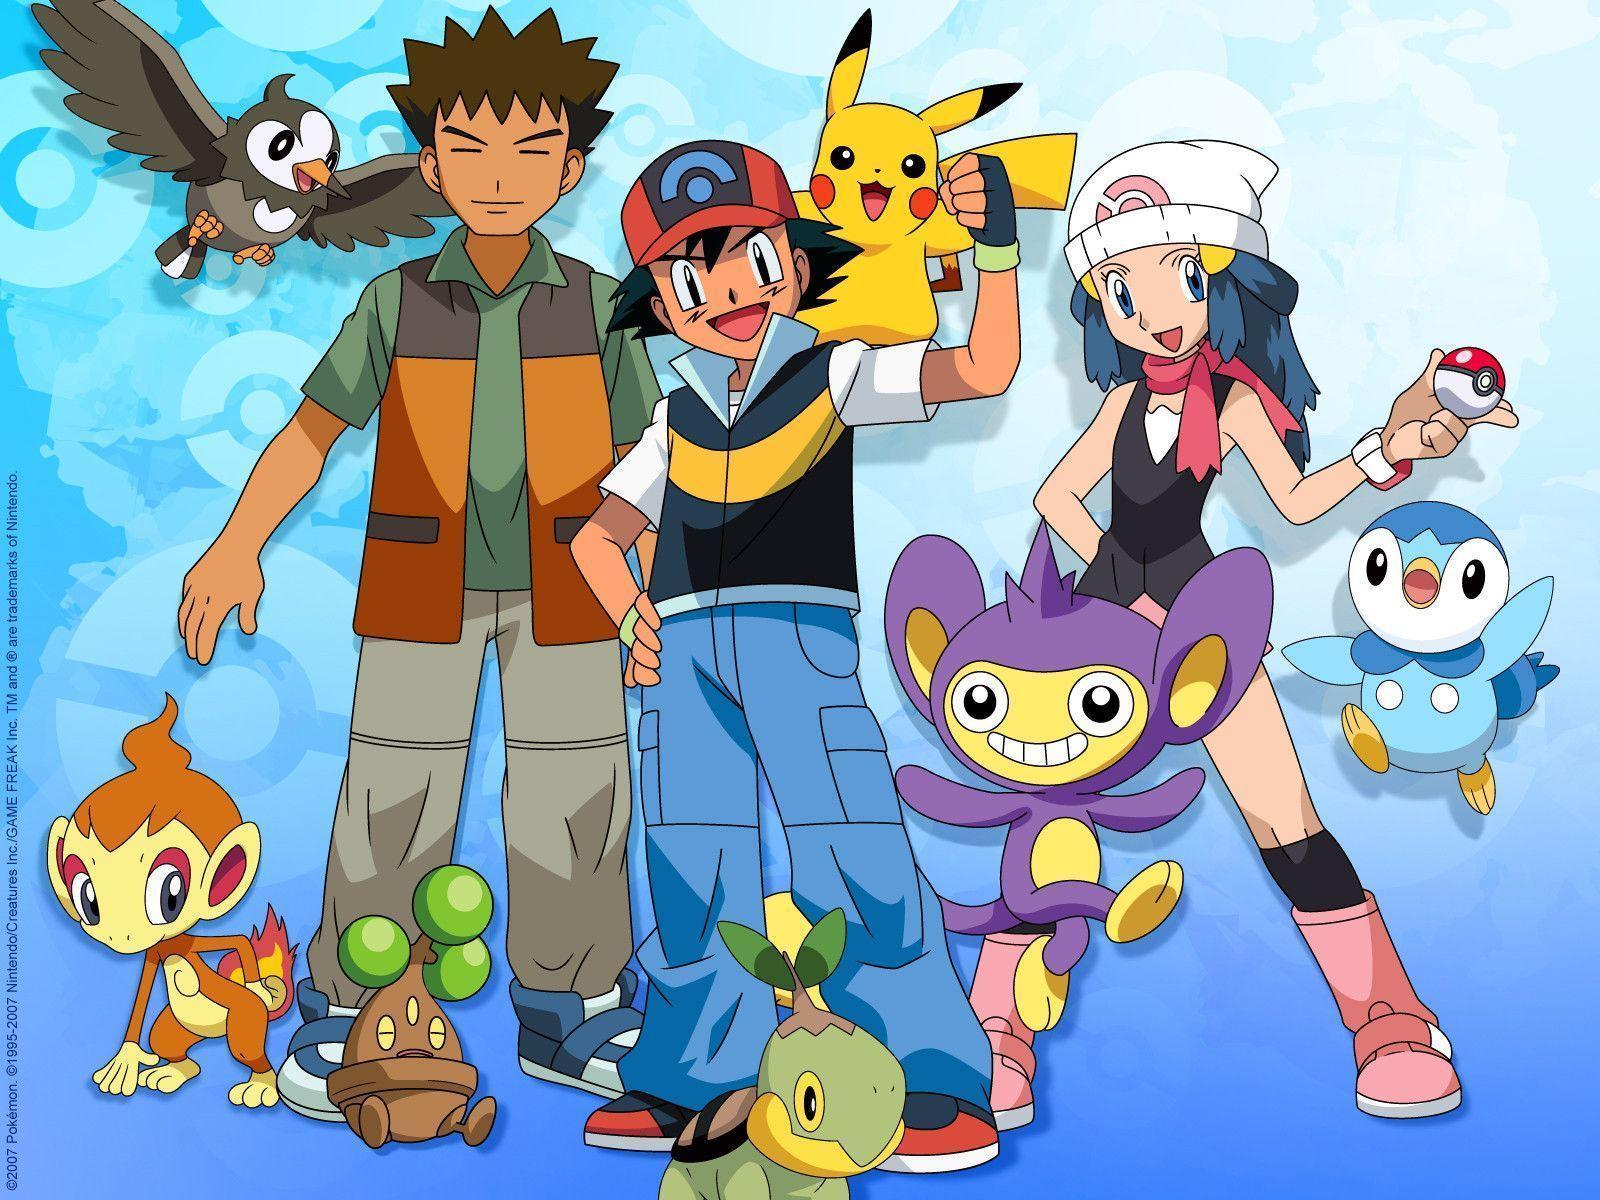 Wallpaper download pokemon - Pokemon Hd Wallpaper Large Hd Wallpaper Database